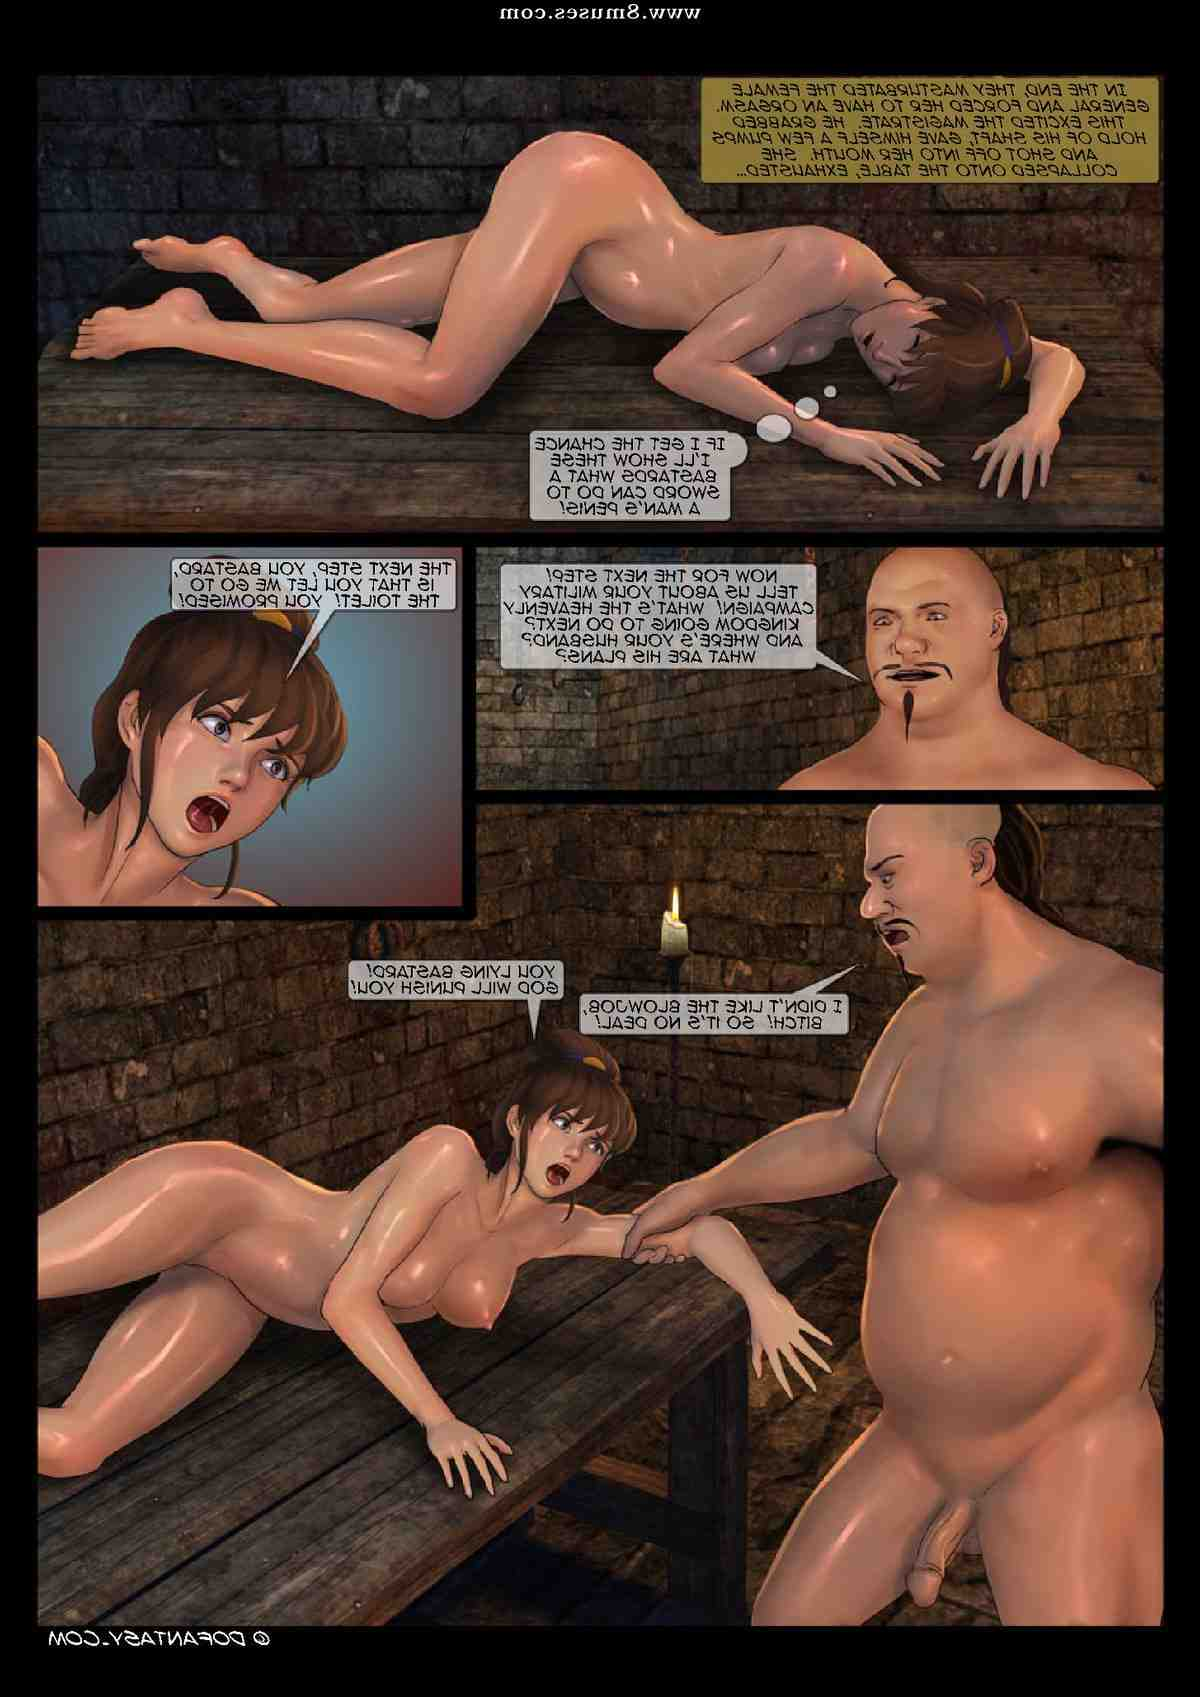 Fansadox-Comics/401-500/Fansadox-412-Feather-Female-General-2 Fansadox_412_-_Feather_-_Female_General_2__8muses_-_Sex_and_Porn_Comics_35.jpg